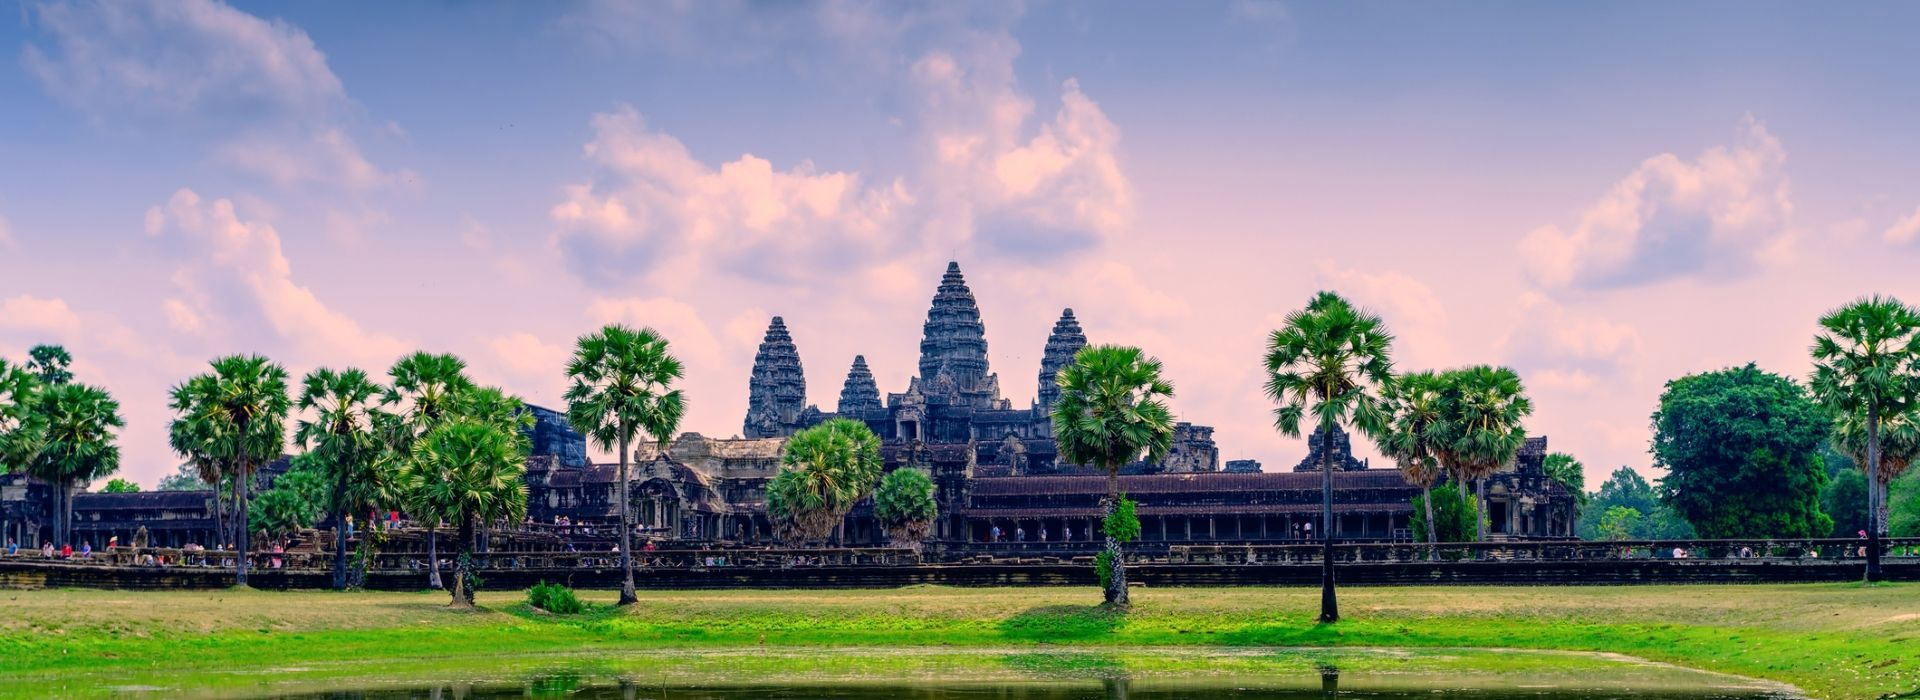 Active and outdoor Tours in Siem Reap